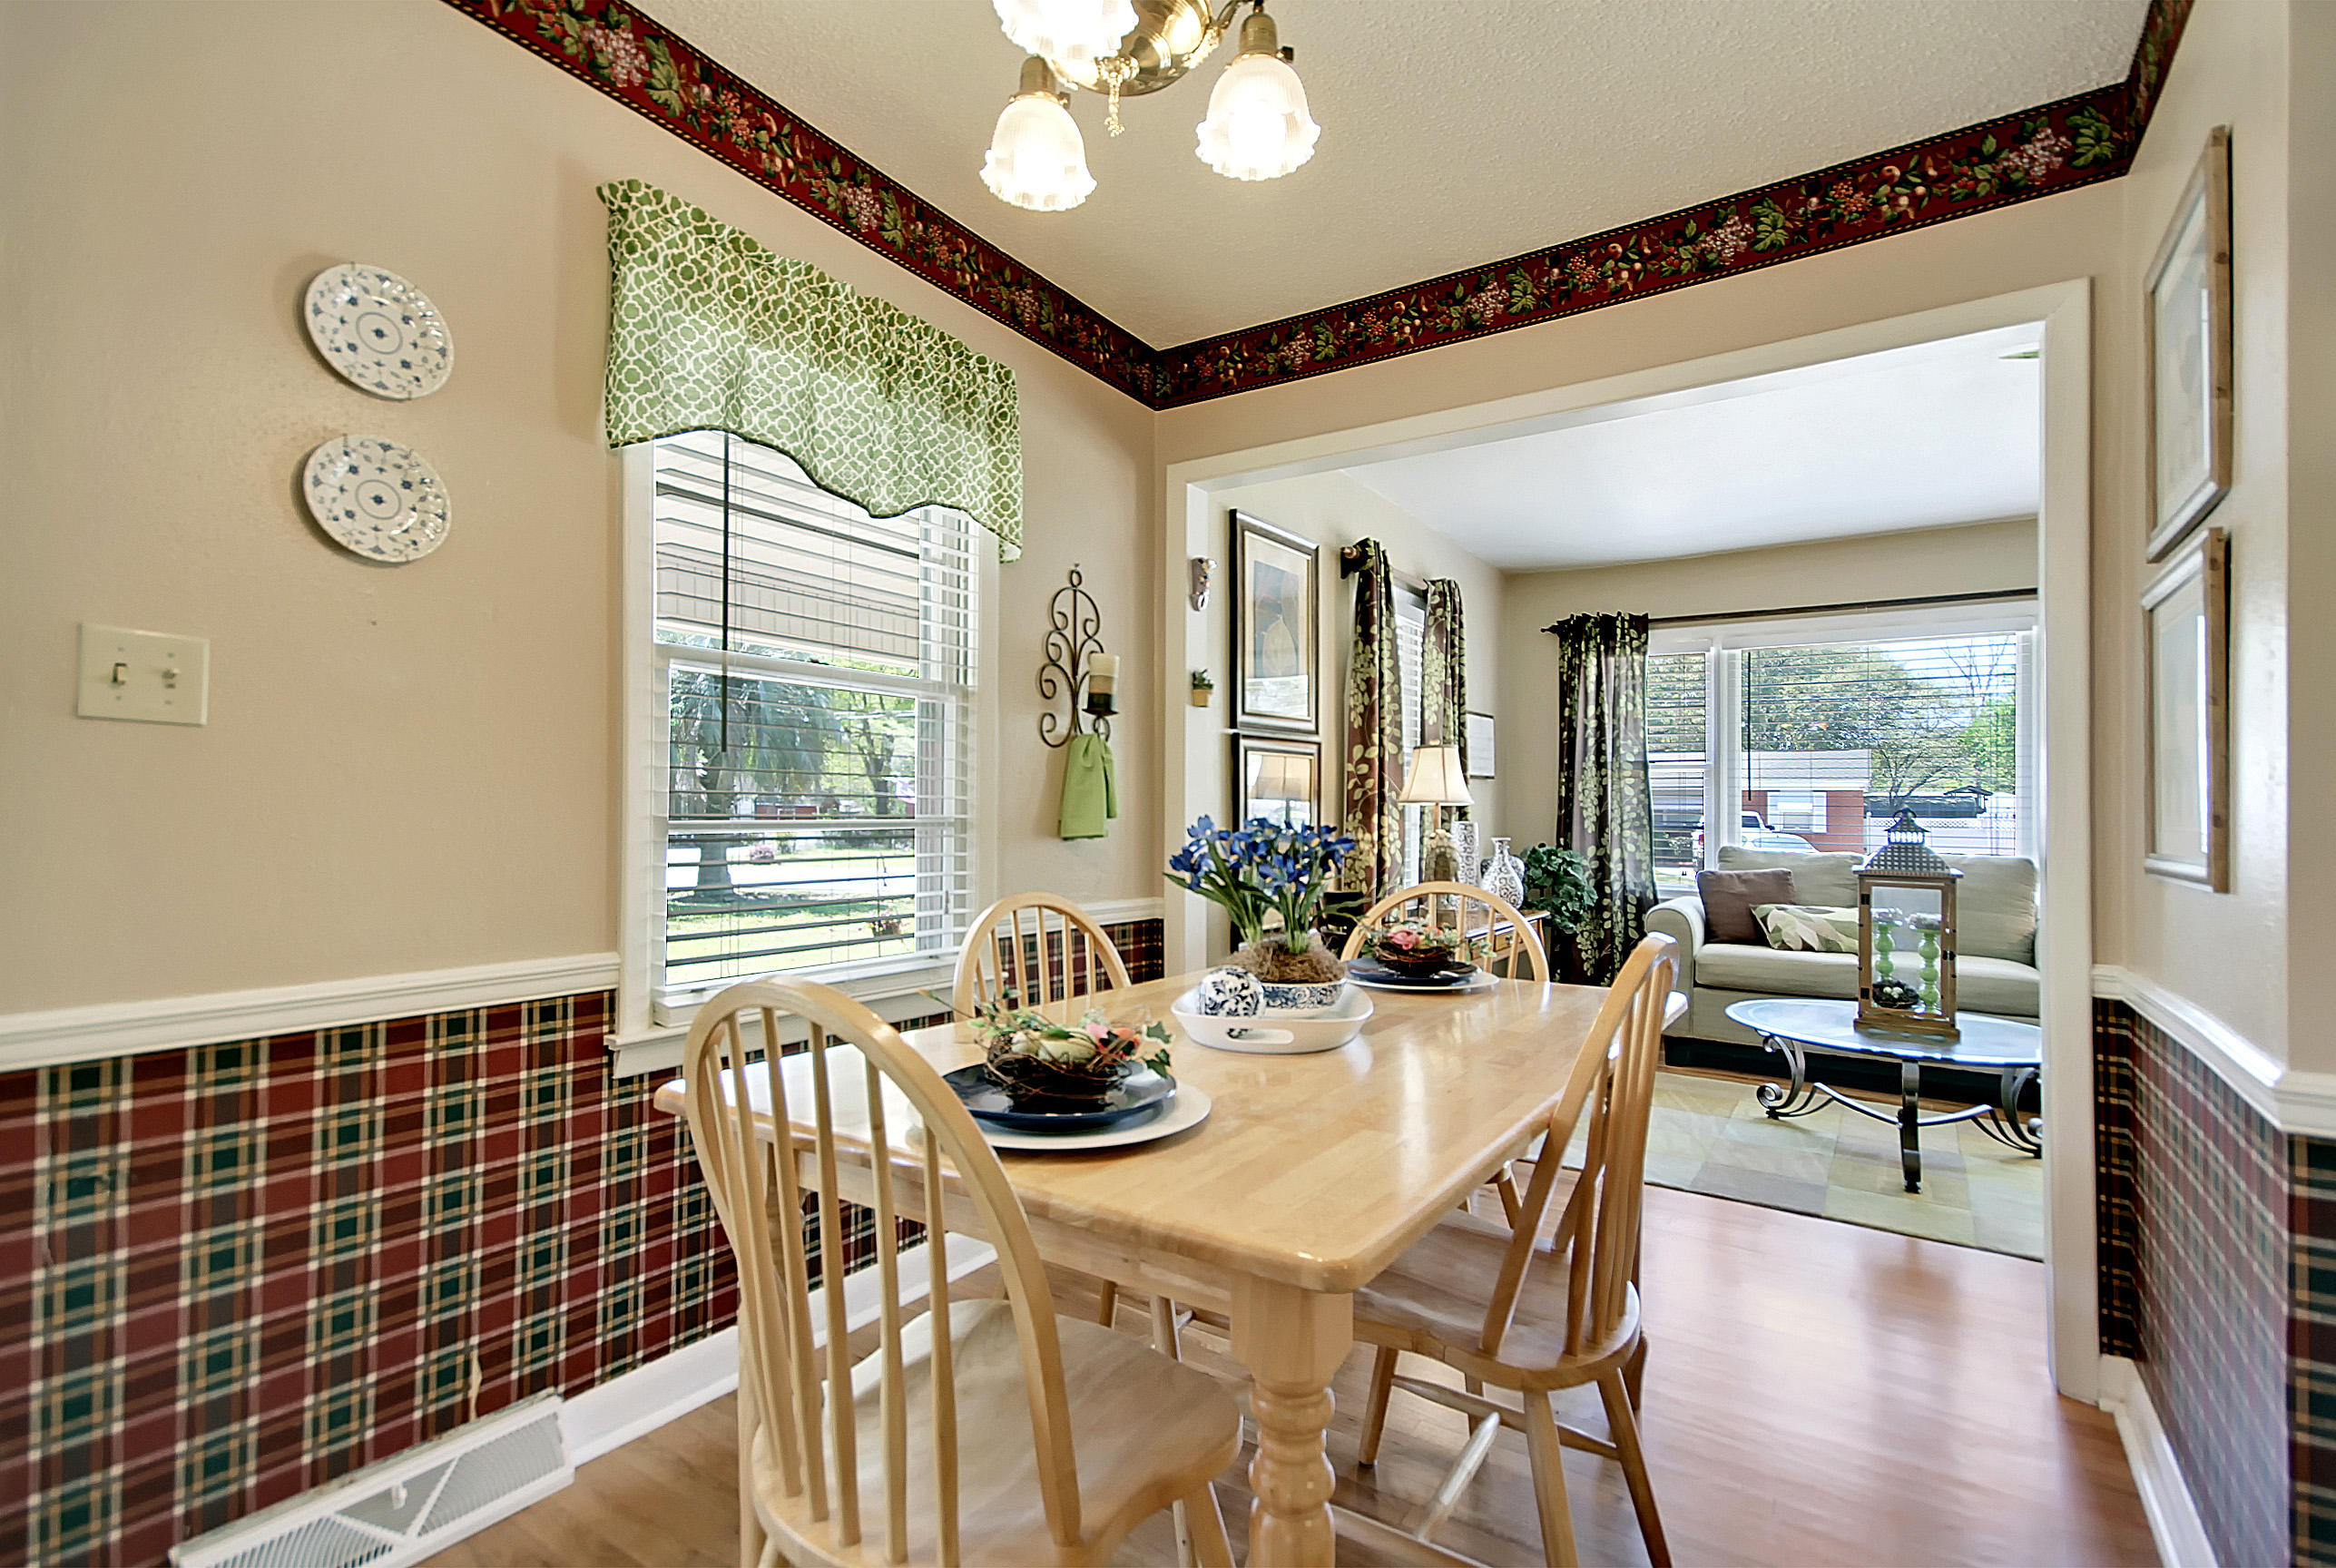 West Glow Homes For Sale - 1138 Crull, Charleston, SC - 9